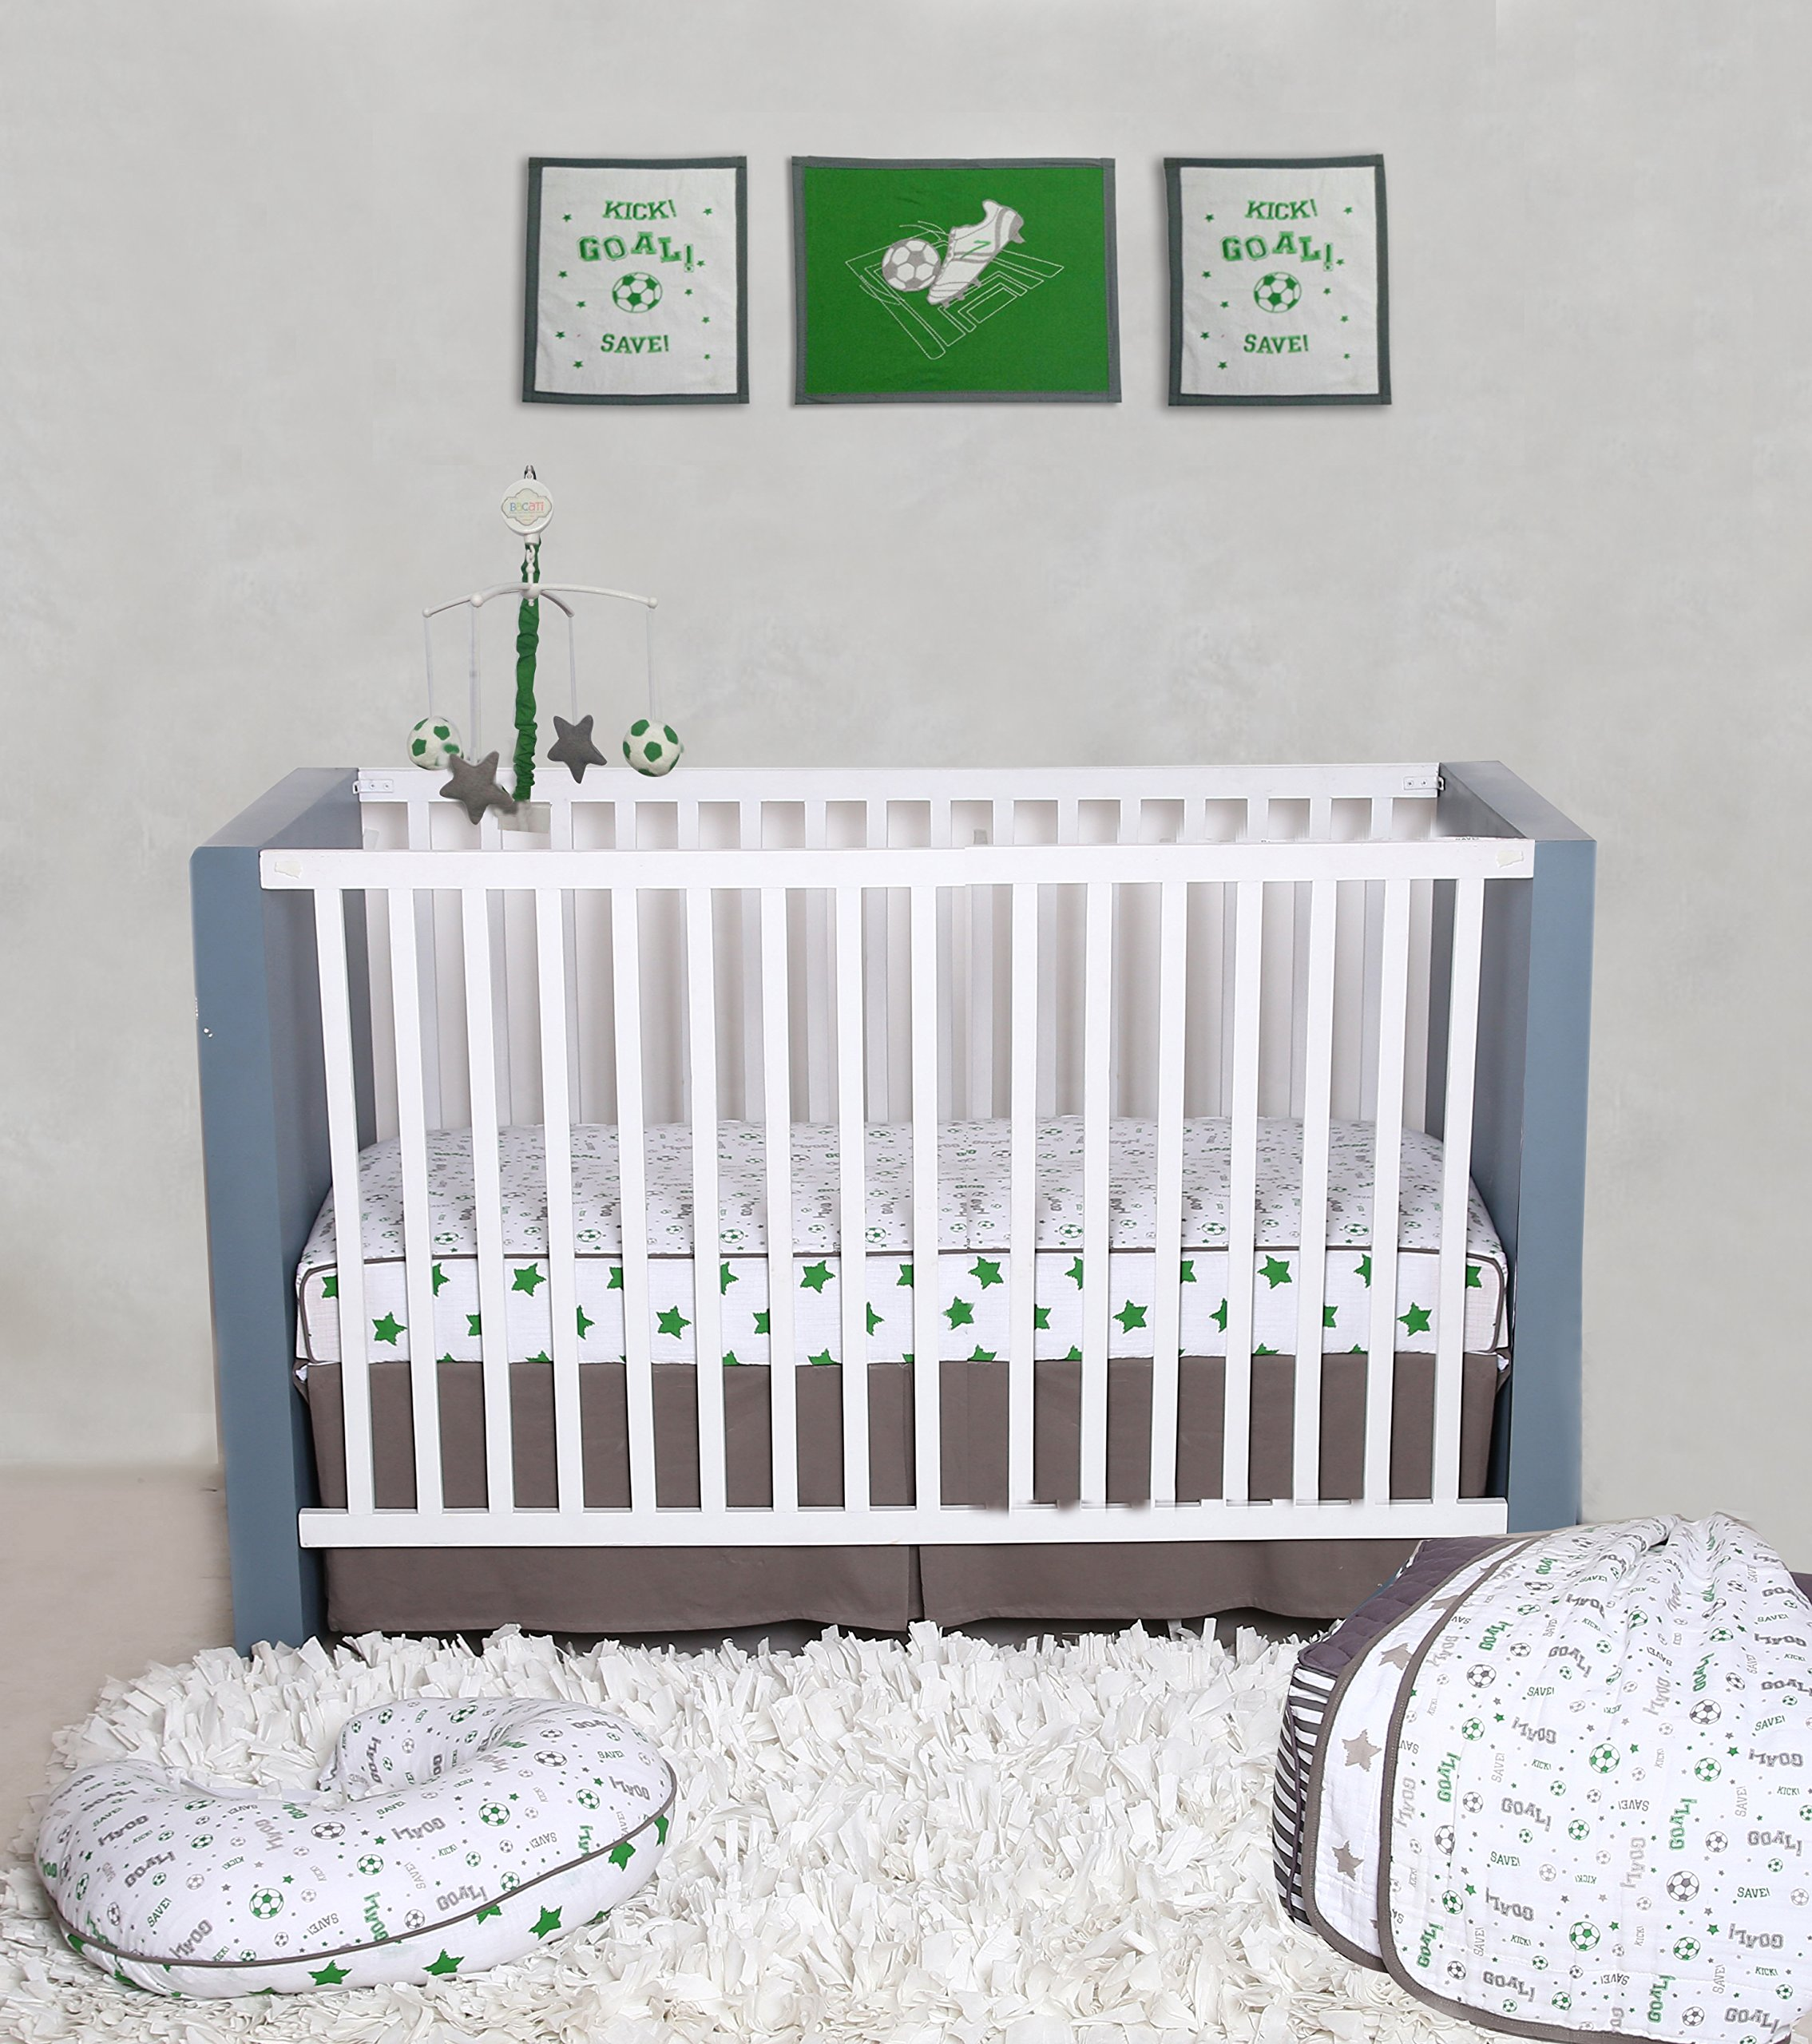 Bacati Soccer Ball 100% Cotton 3 Piece Boys Crib Set with 4 Layer Lux Blanket/Fitted Sheet/Skirt, Green/Grey